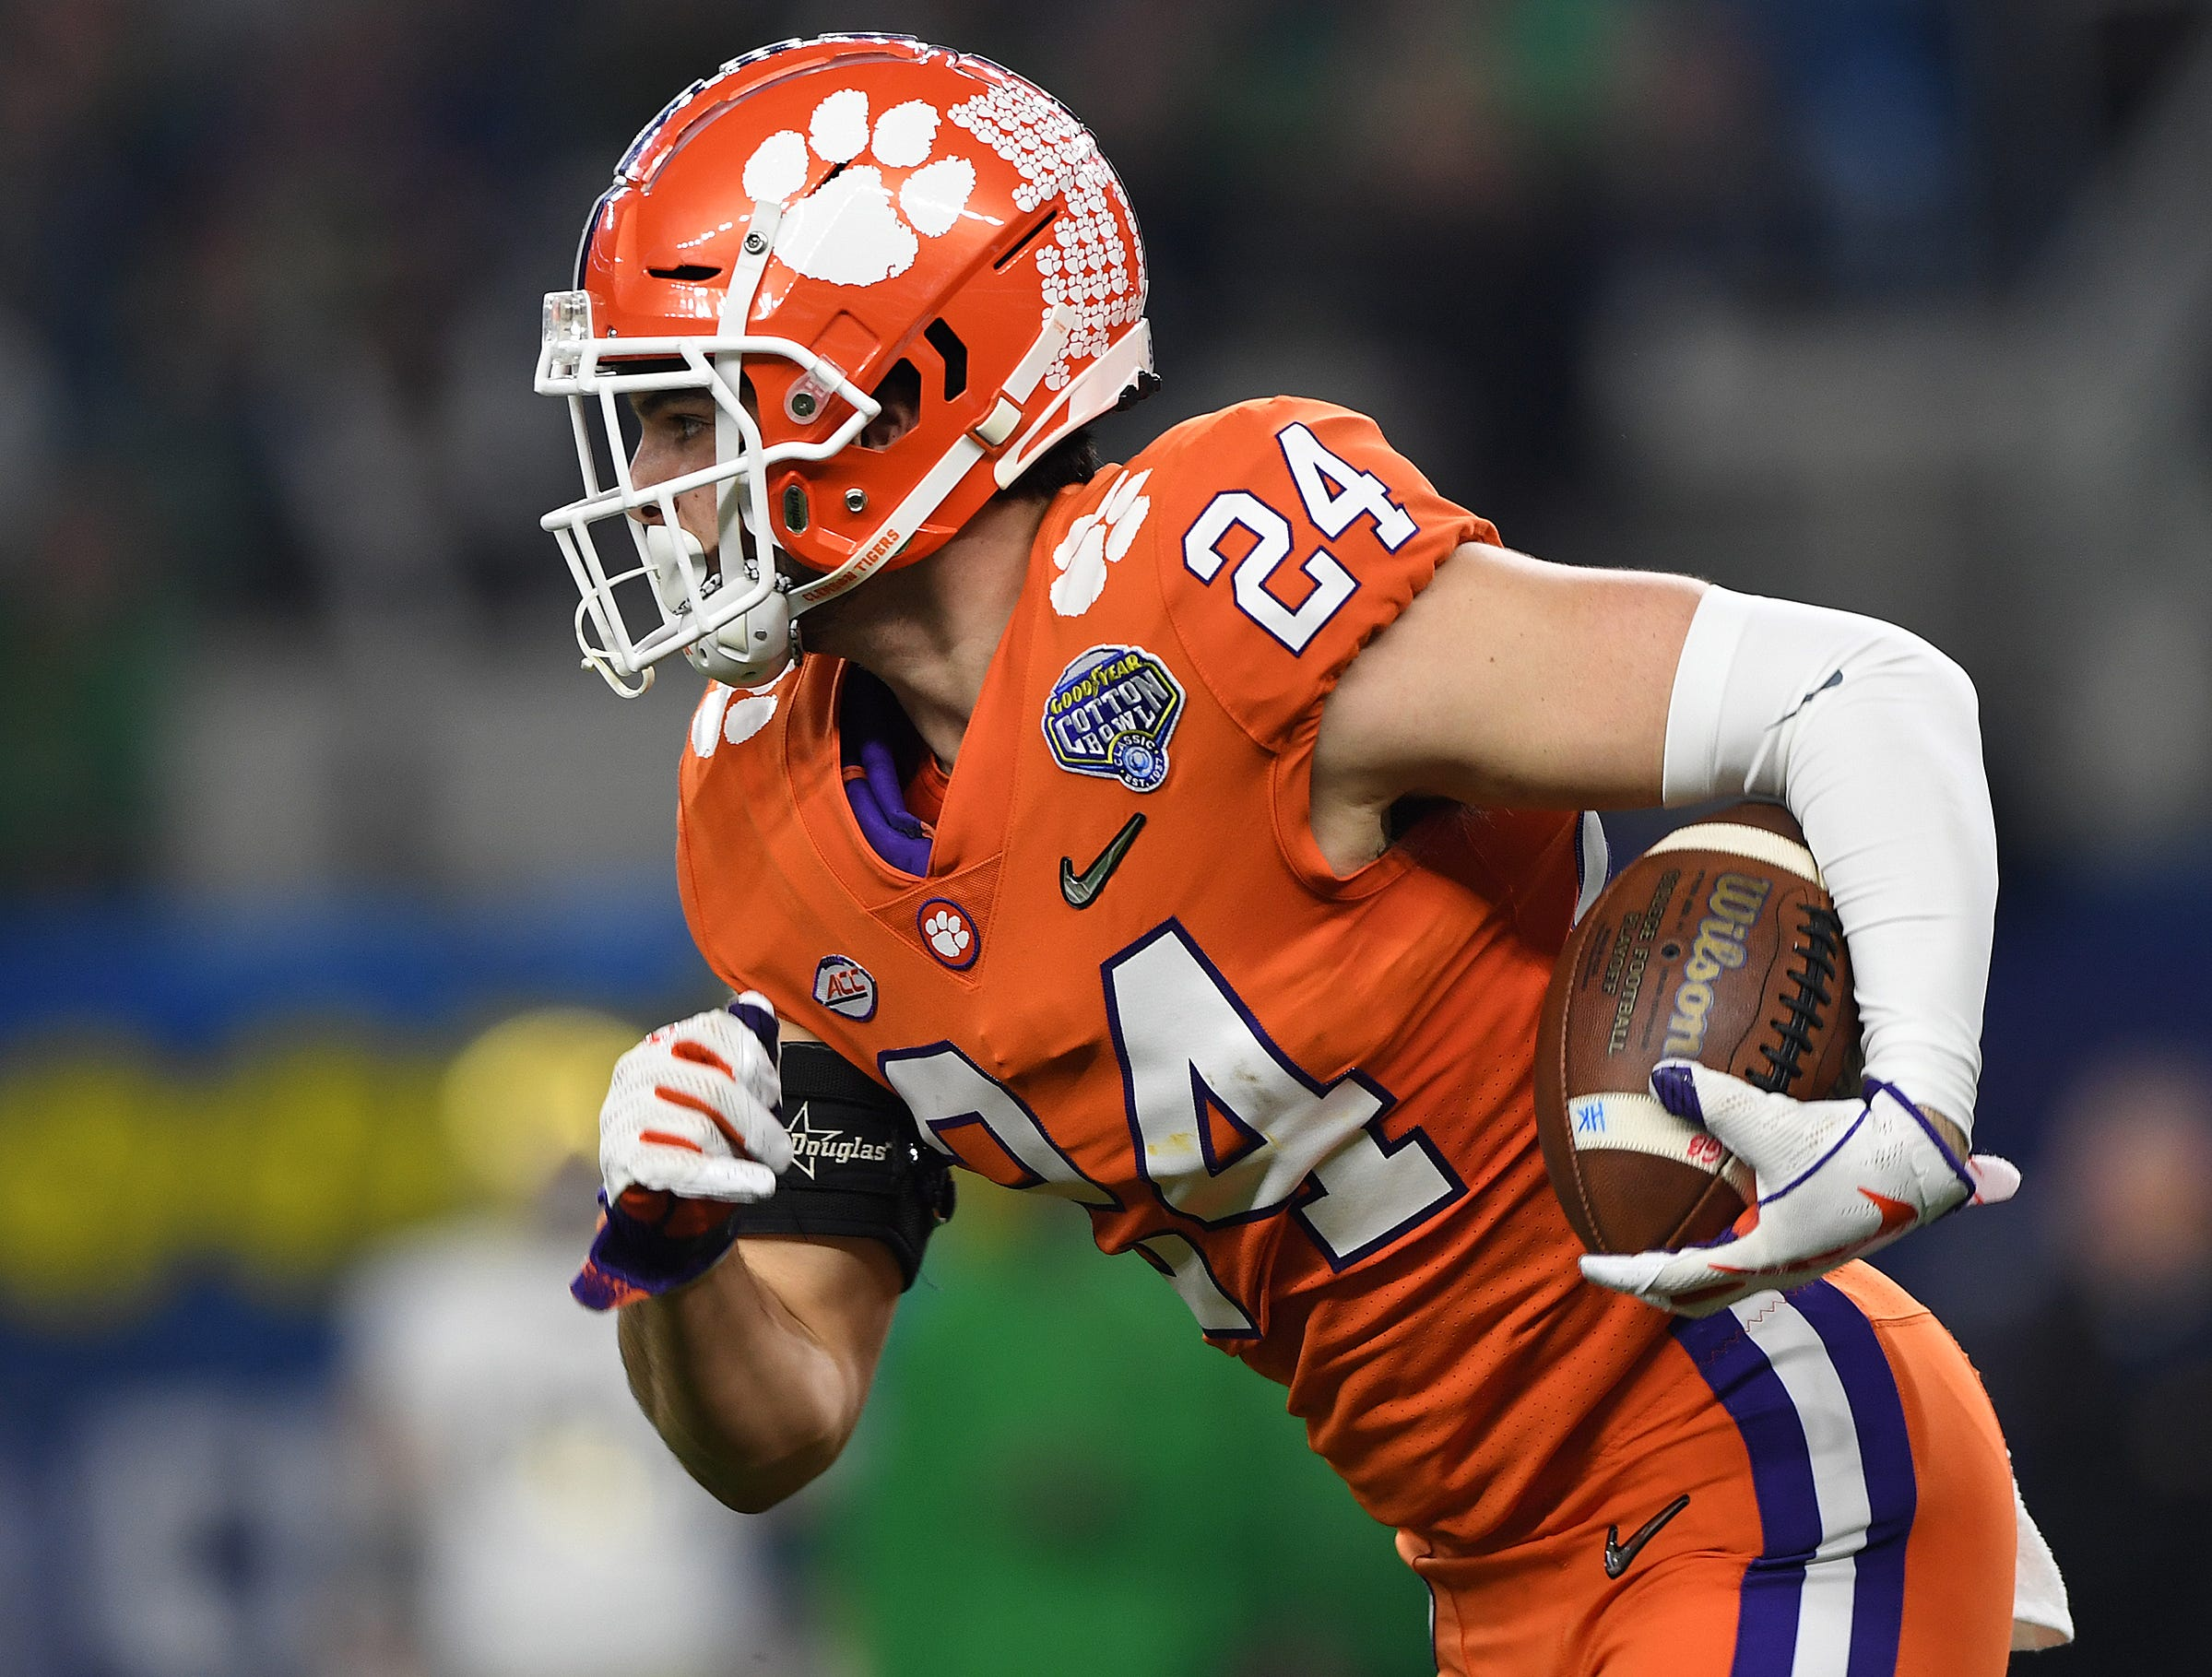 Clemson safety Nolan Turner (24) returns a interception against Notre Dame during the 3rd quarter of the Goodyear Cotton Bowl at AT&T stadium in Arlington, TX Saturday, December 29, 2018.